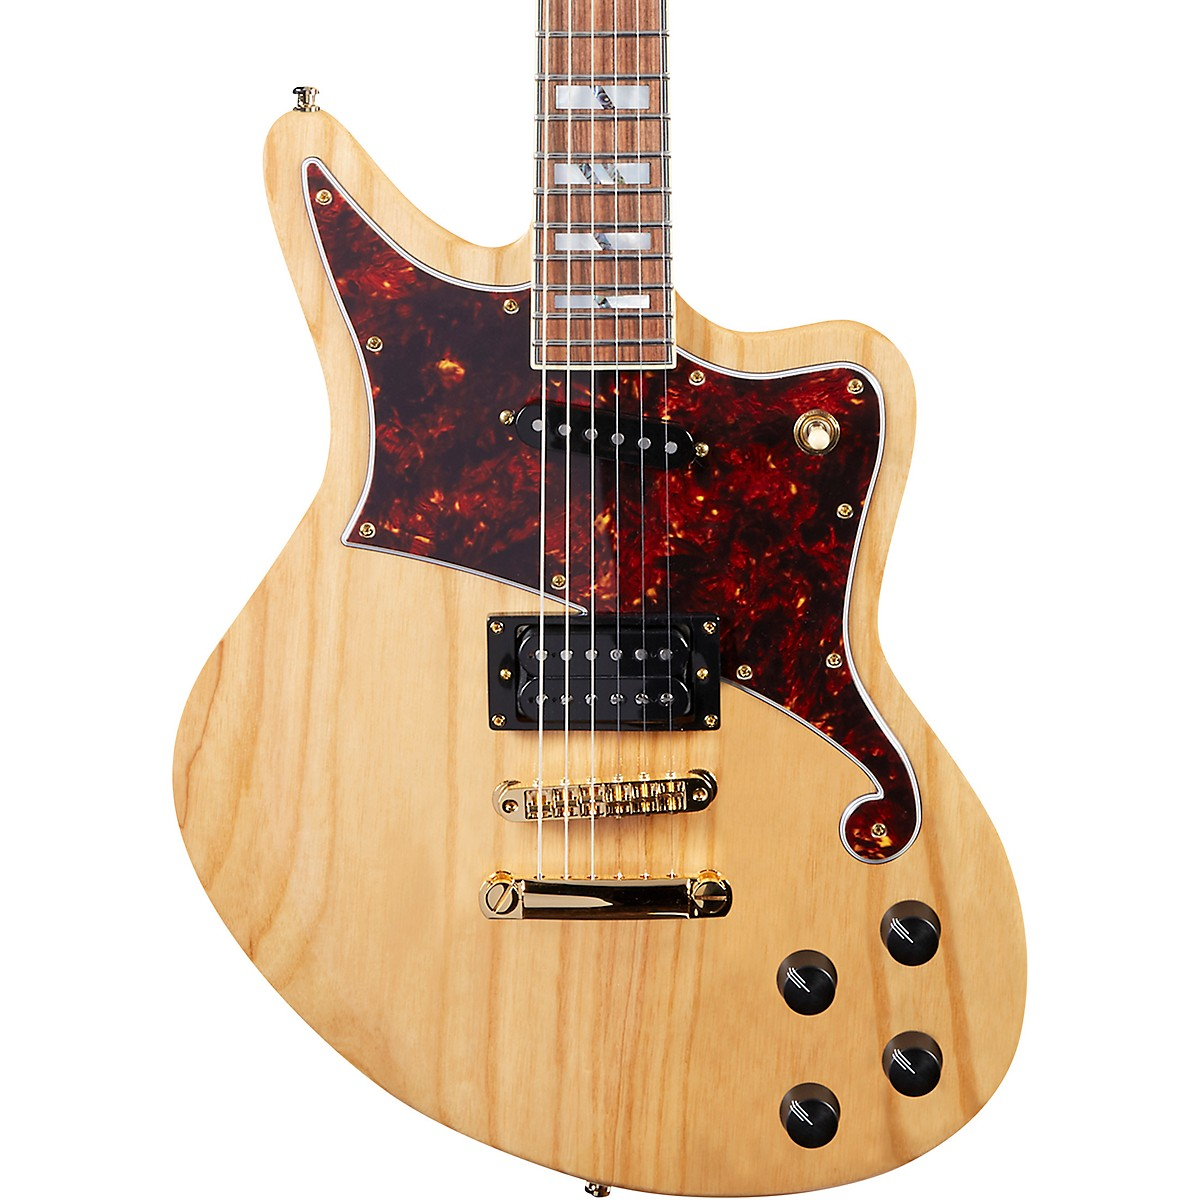 D'Angelico Deluxe Series Bedford Swamp Ash Electric Guitar with Seymour Duncan Pickups and Stopbar Tailpiece